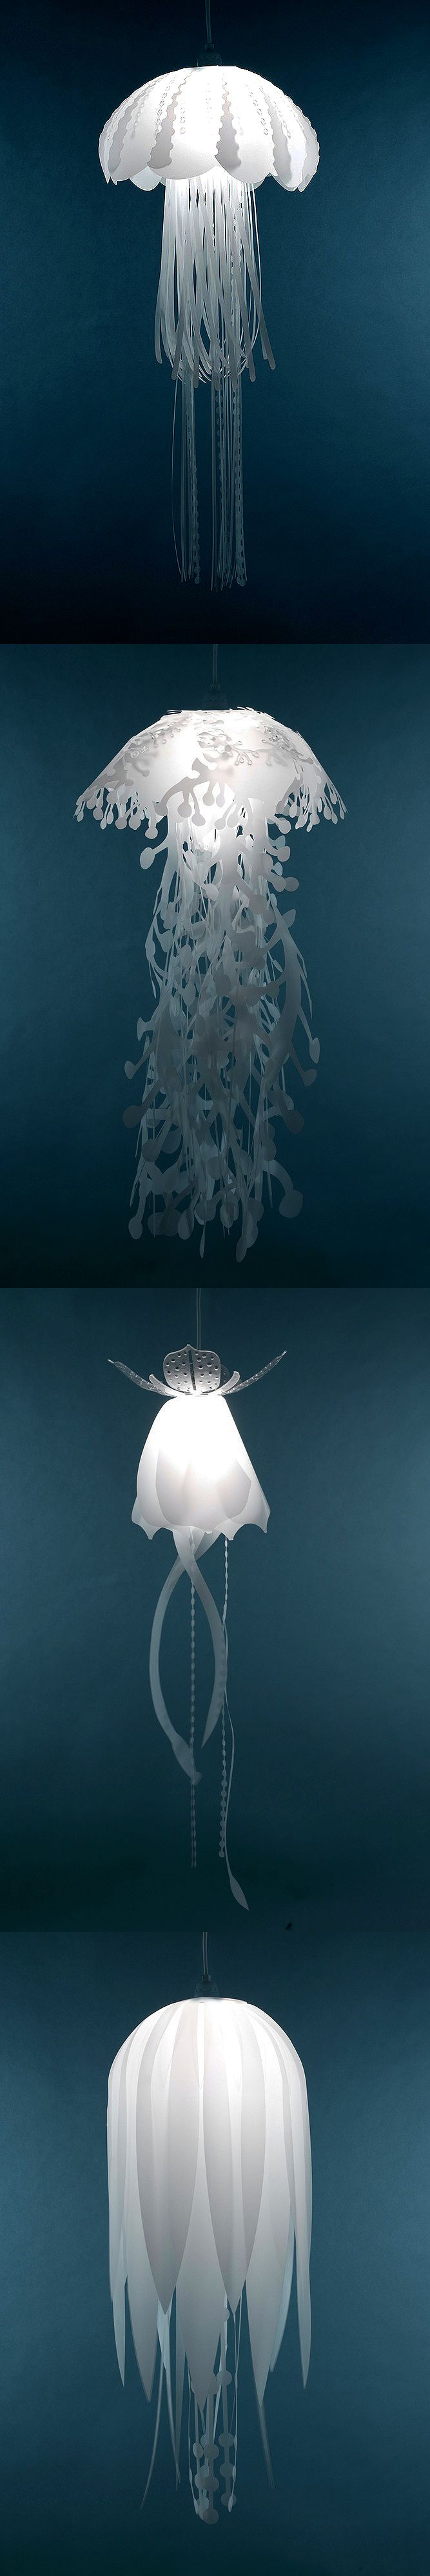 Thin, lively and realistic, these charming hanging jellyfish lamps will give you the underwater experience without a sting. Check it out ==> | Jellyfish Lamps | http://gwyl.io/jellyfish-lamps/